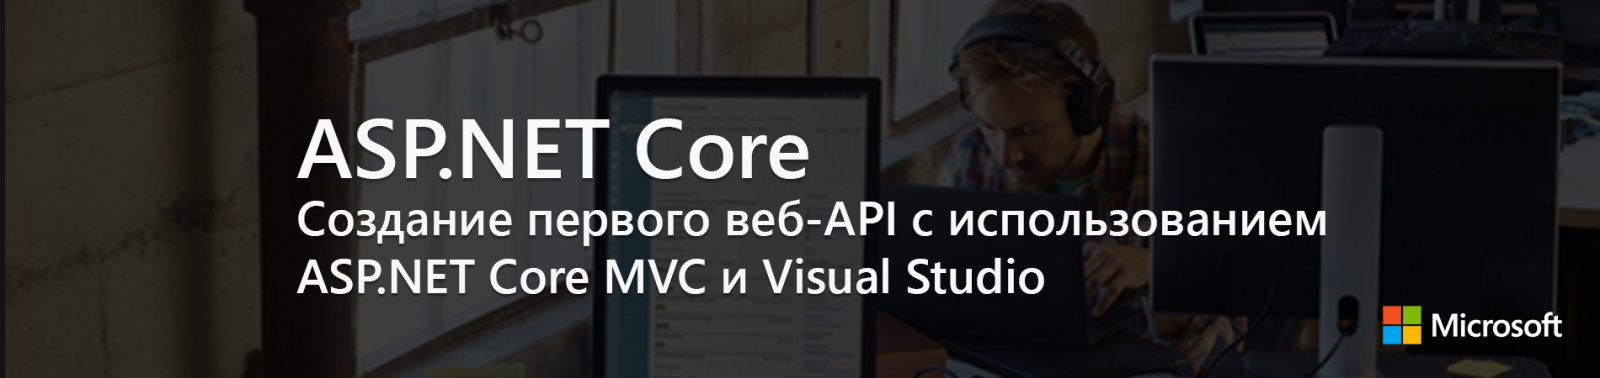 ASP.NET Core: Создание первого веб-API с использованием ASP.NET Core MVC и Visual Studio - 1